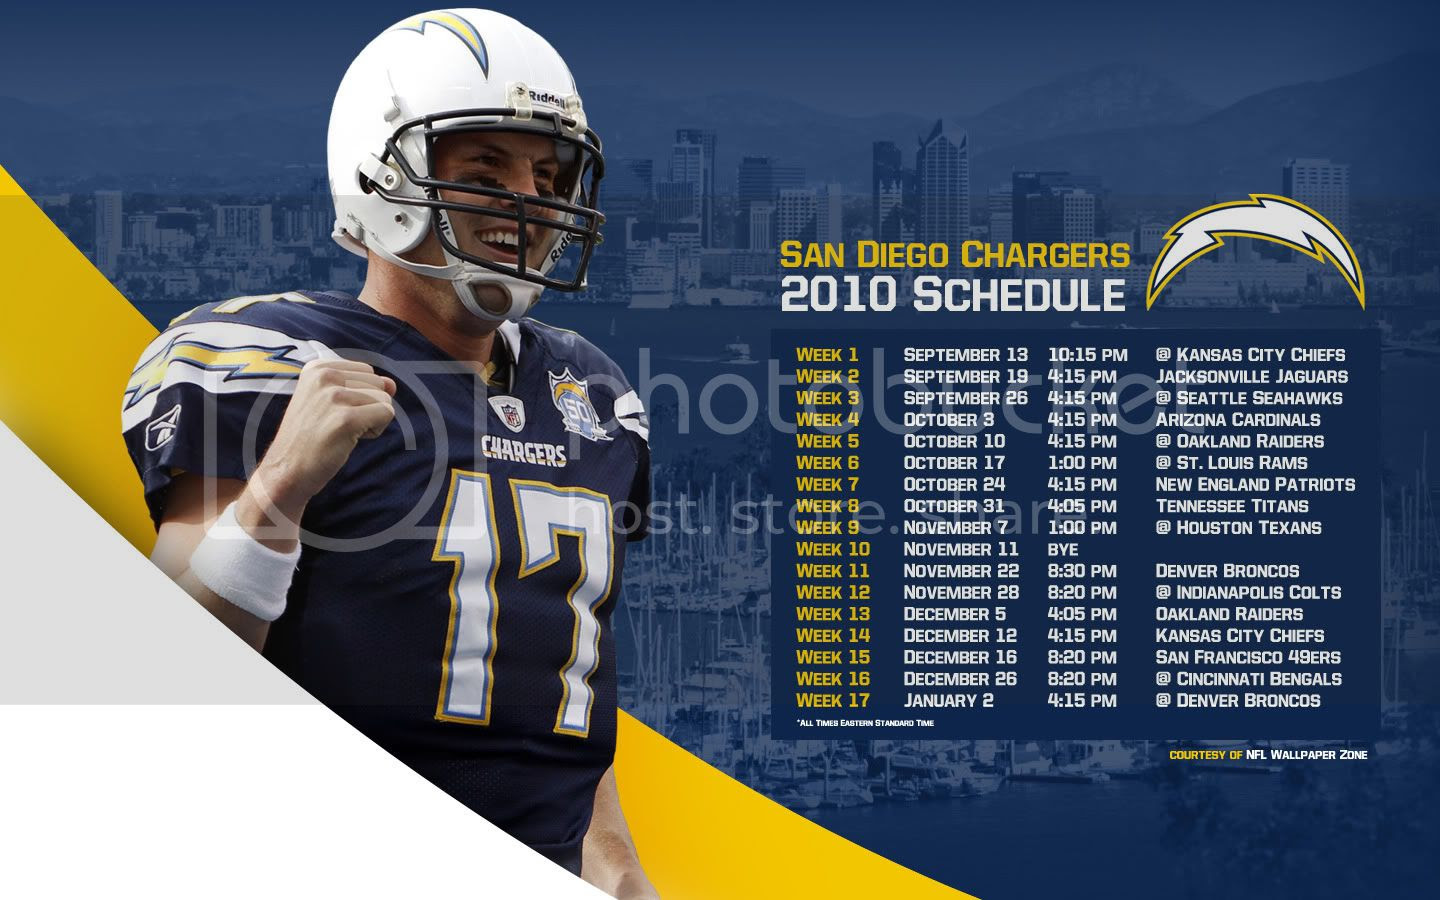 Nfl Wallpaper Zone San Diego Chargers 2010 Schedule Wallpaper